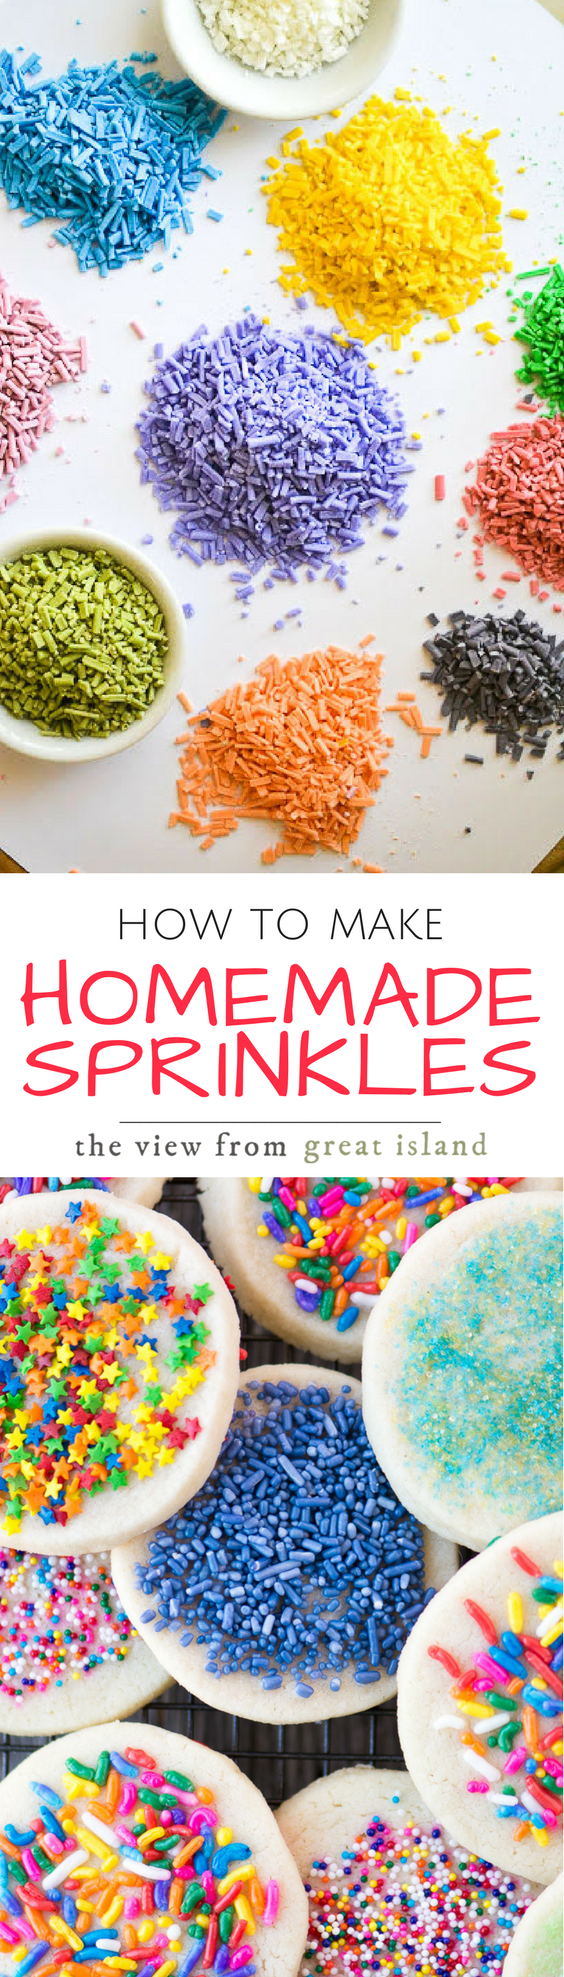 How to Make Homemade Sprinkles ~ an easy recipe for making your own customized sprinkles ~ make them any color you like! #diy #dessert #icecream #funfetti #homemadesprinkles #sprinklesrecipe #easyhomemadesprinkles #candy #royalicing #sugarcraft #confectionary #kidsdessert